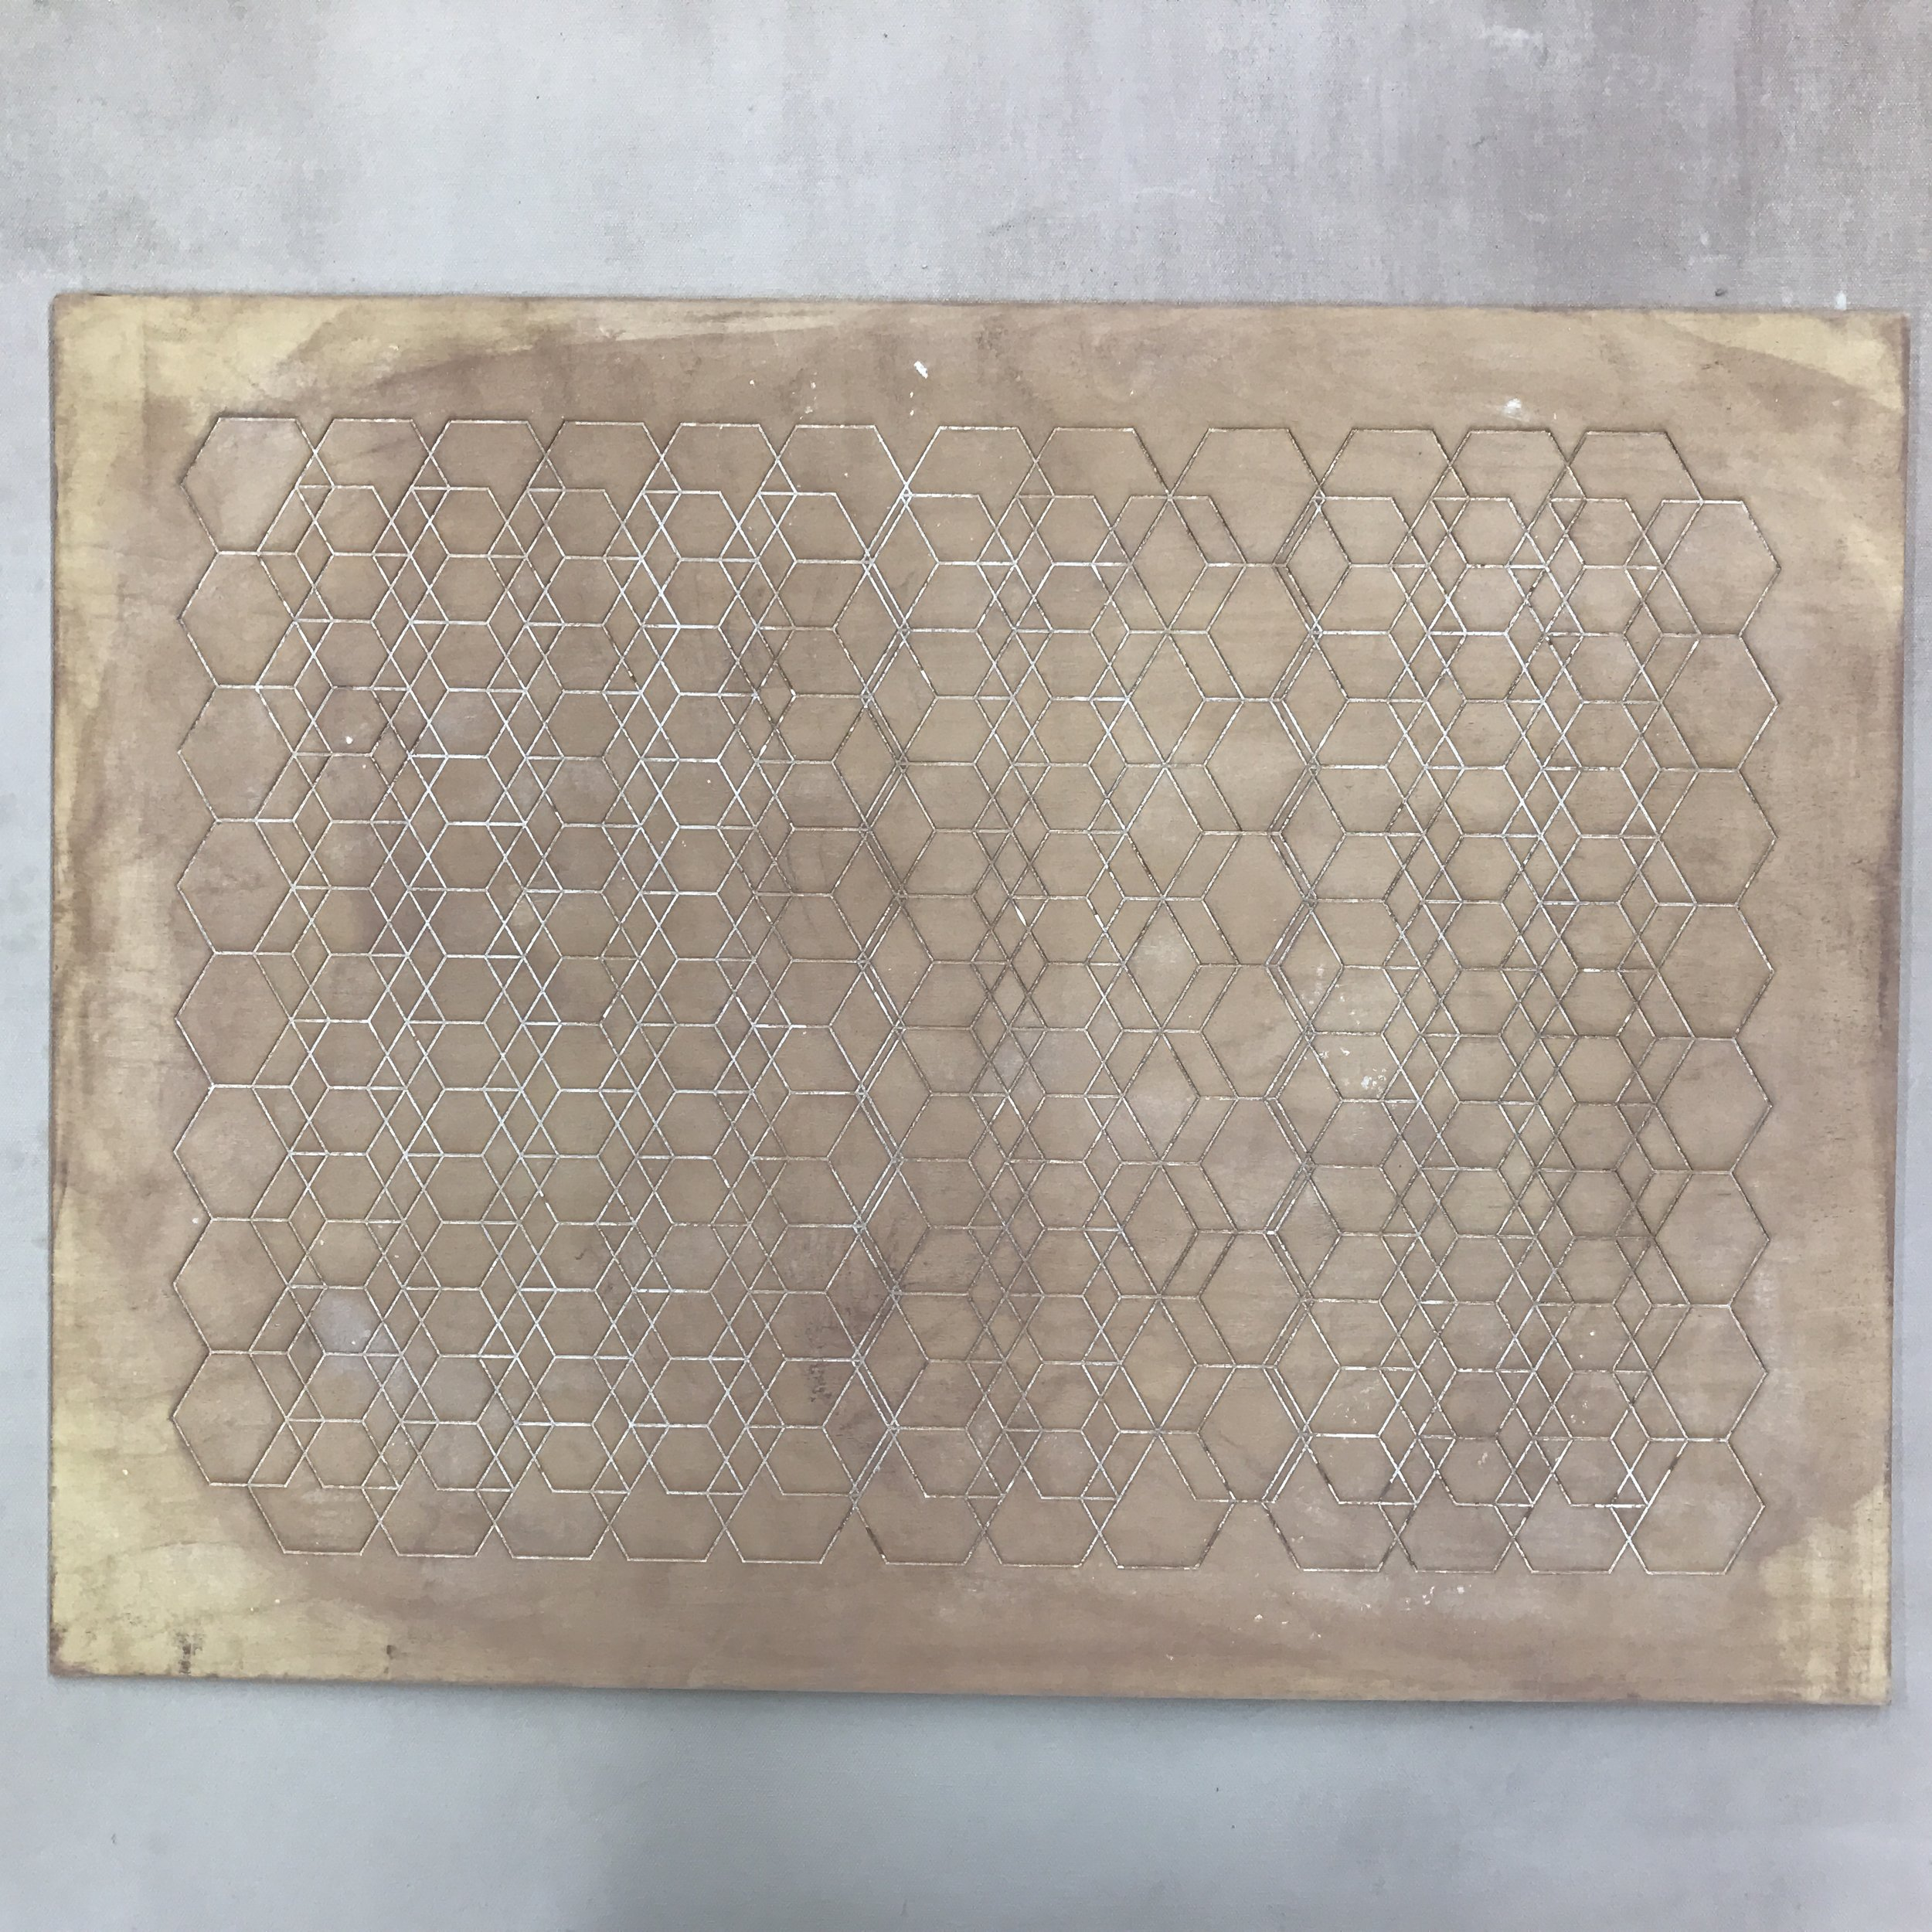 Laser etched wood as a press mold